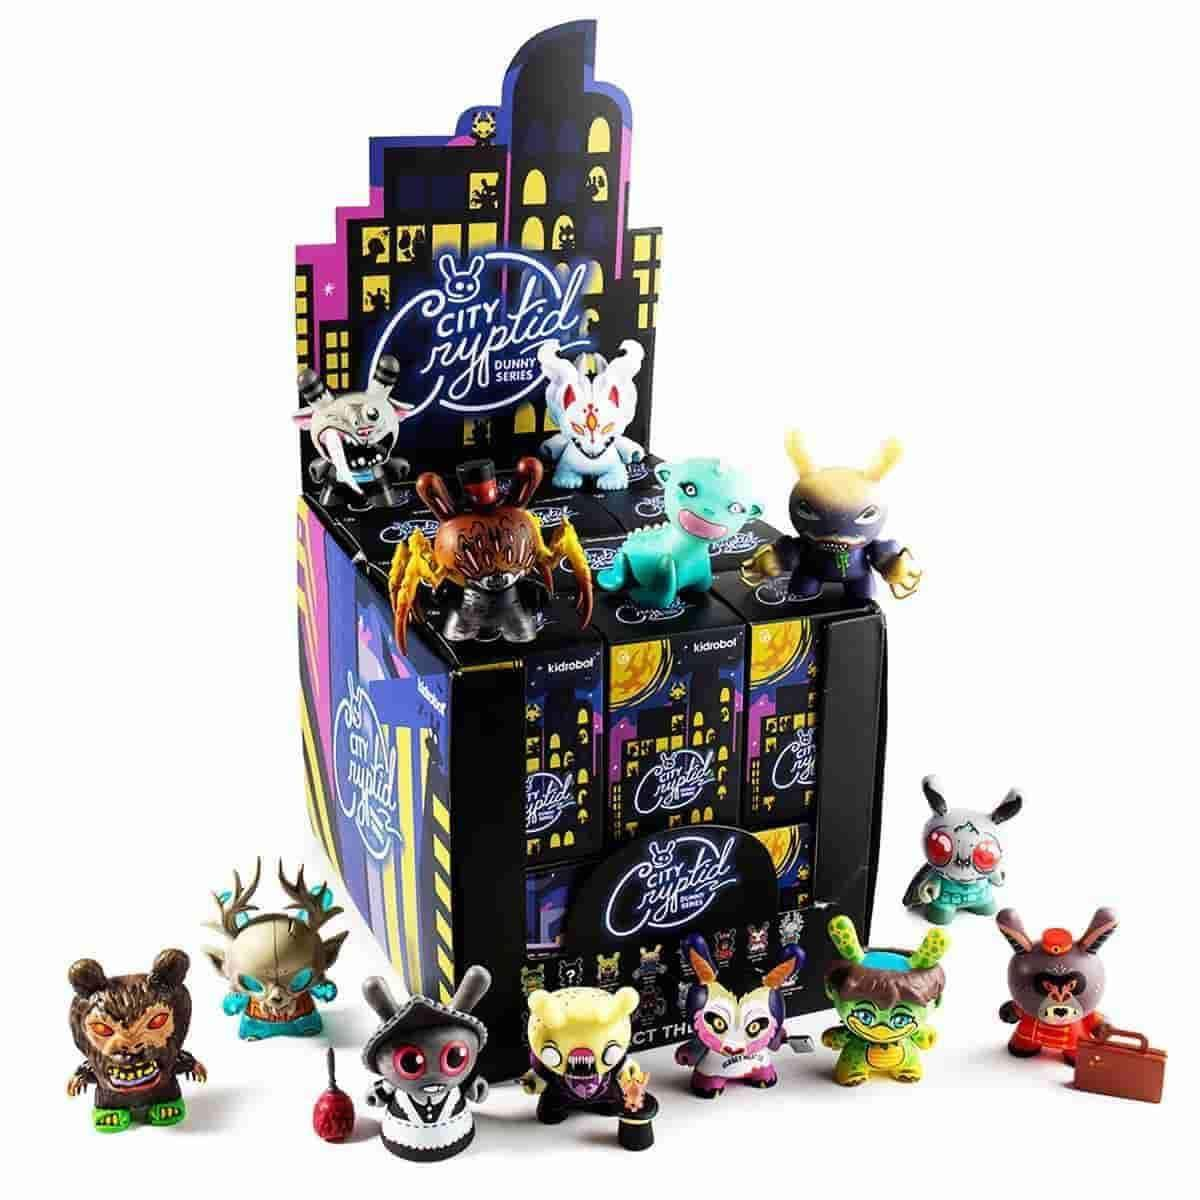 City Cryptid Dunny Series Full Display Case Contains 24 Blind Boxes by Kidrobot Free Case Exclusive W/Purchase - IamRetro